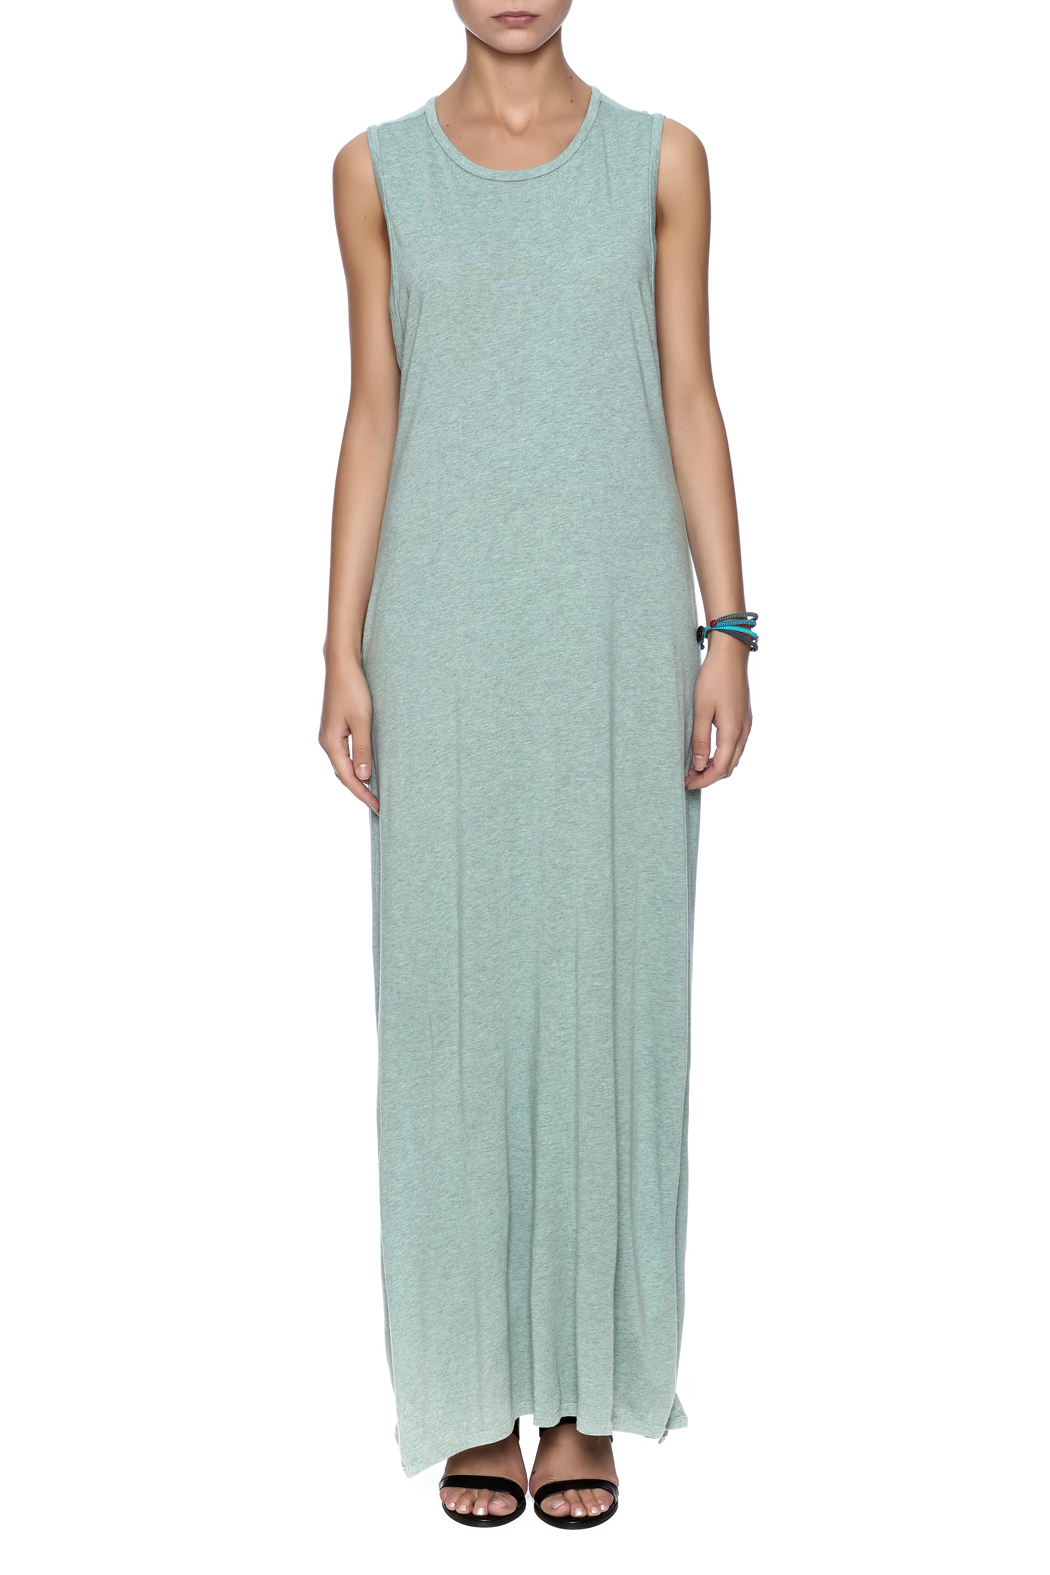 Groceries Apparel Corkscrew Maxi Dress - Front Cropped Image